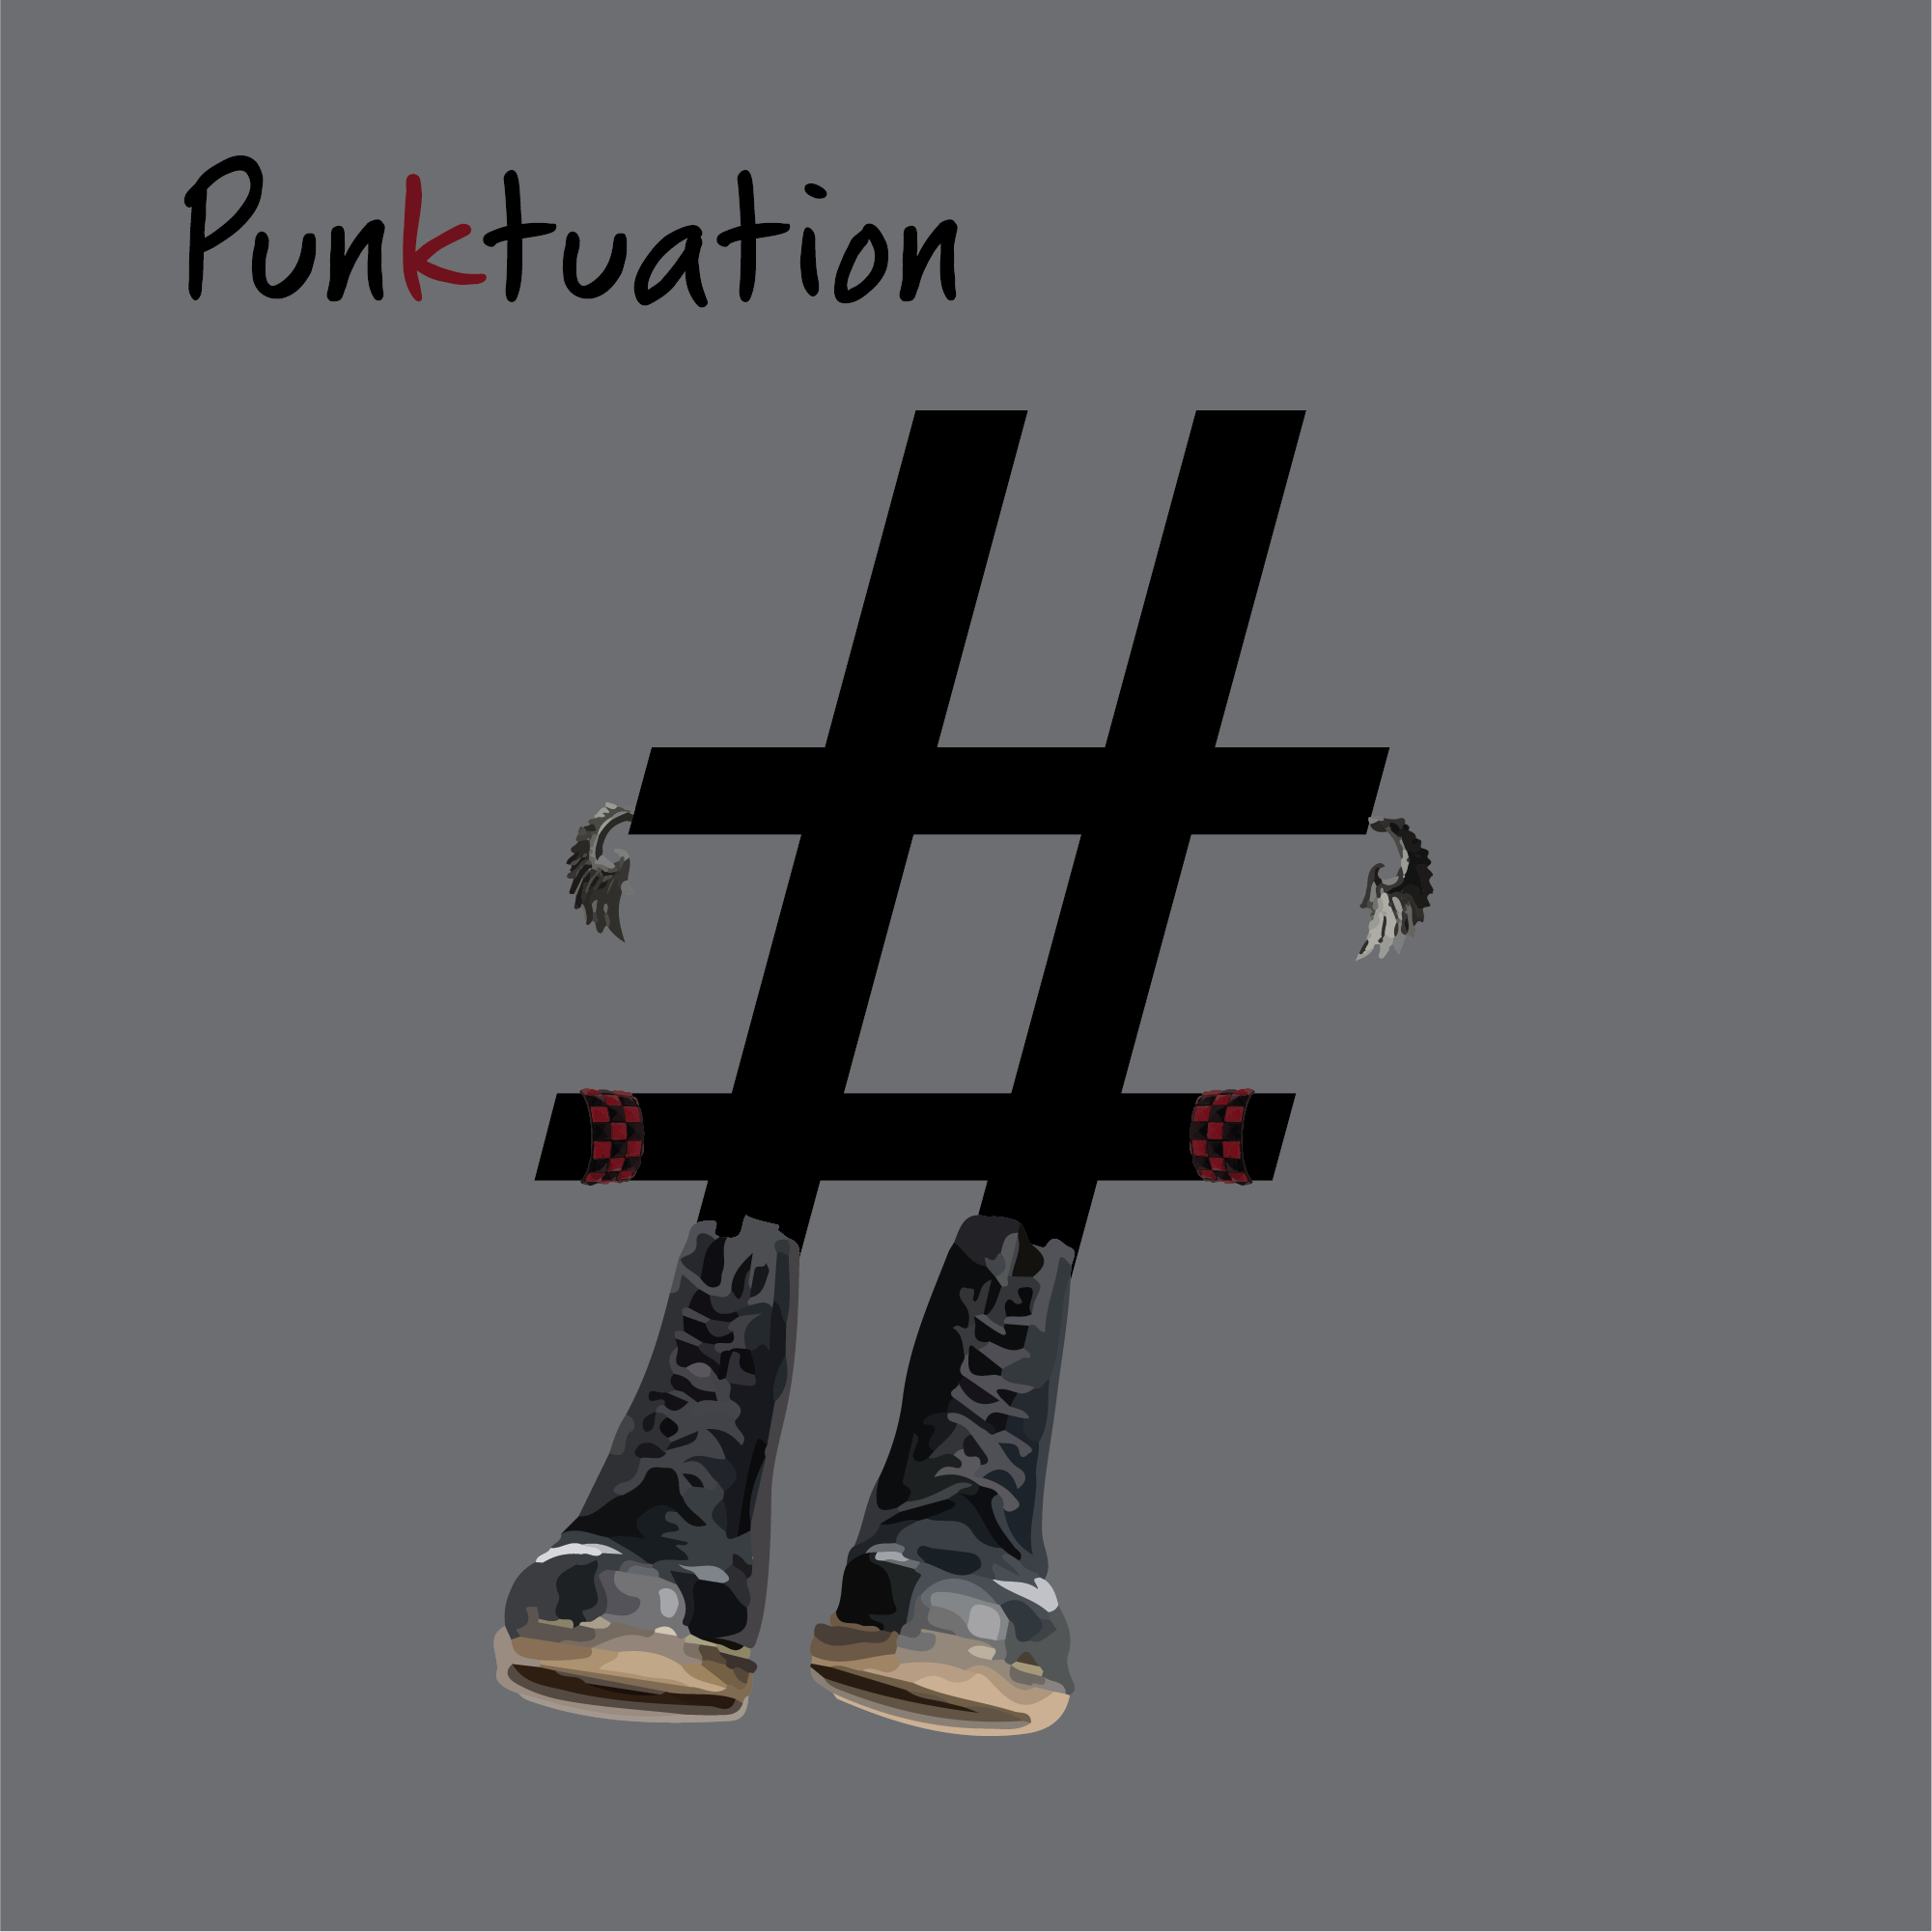 Punktuation_Hashtag.png